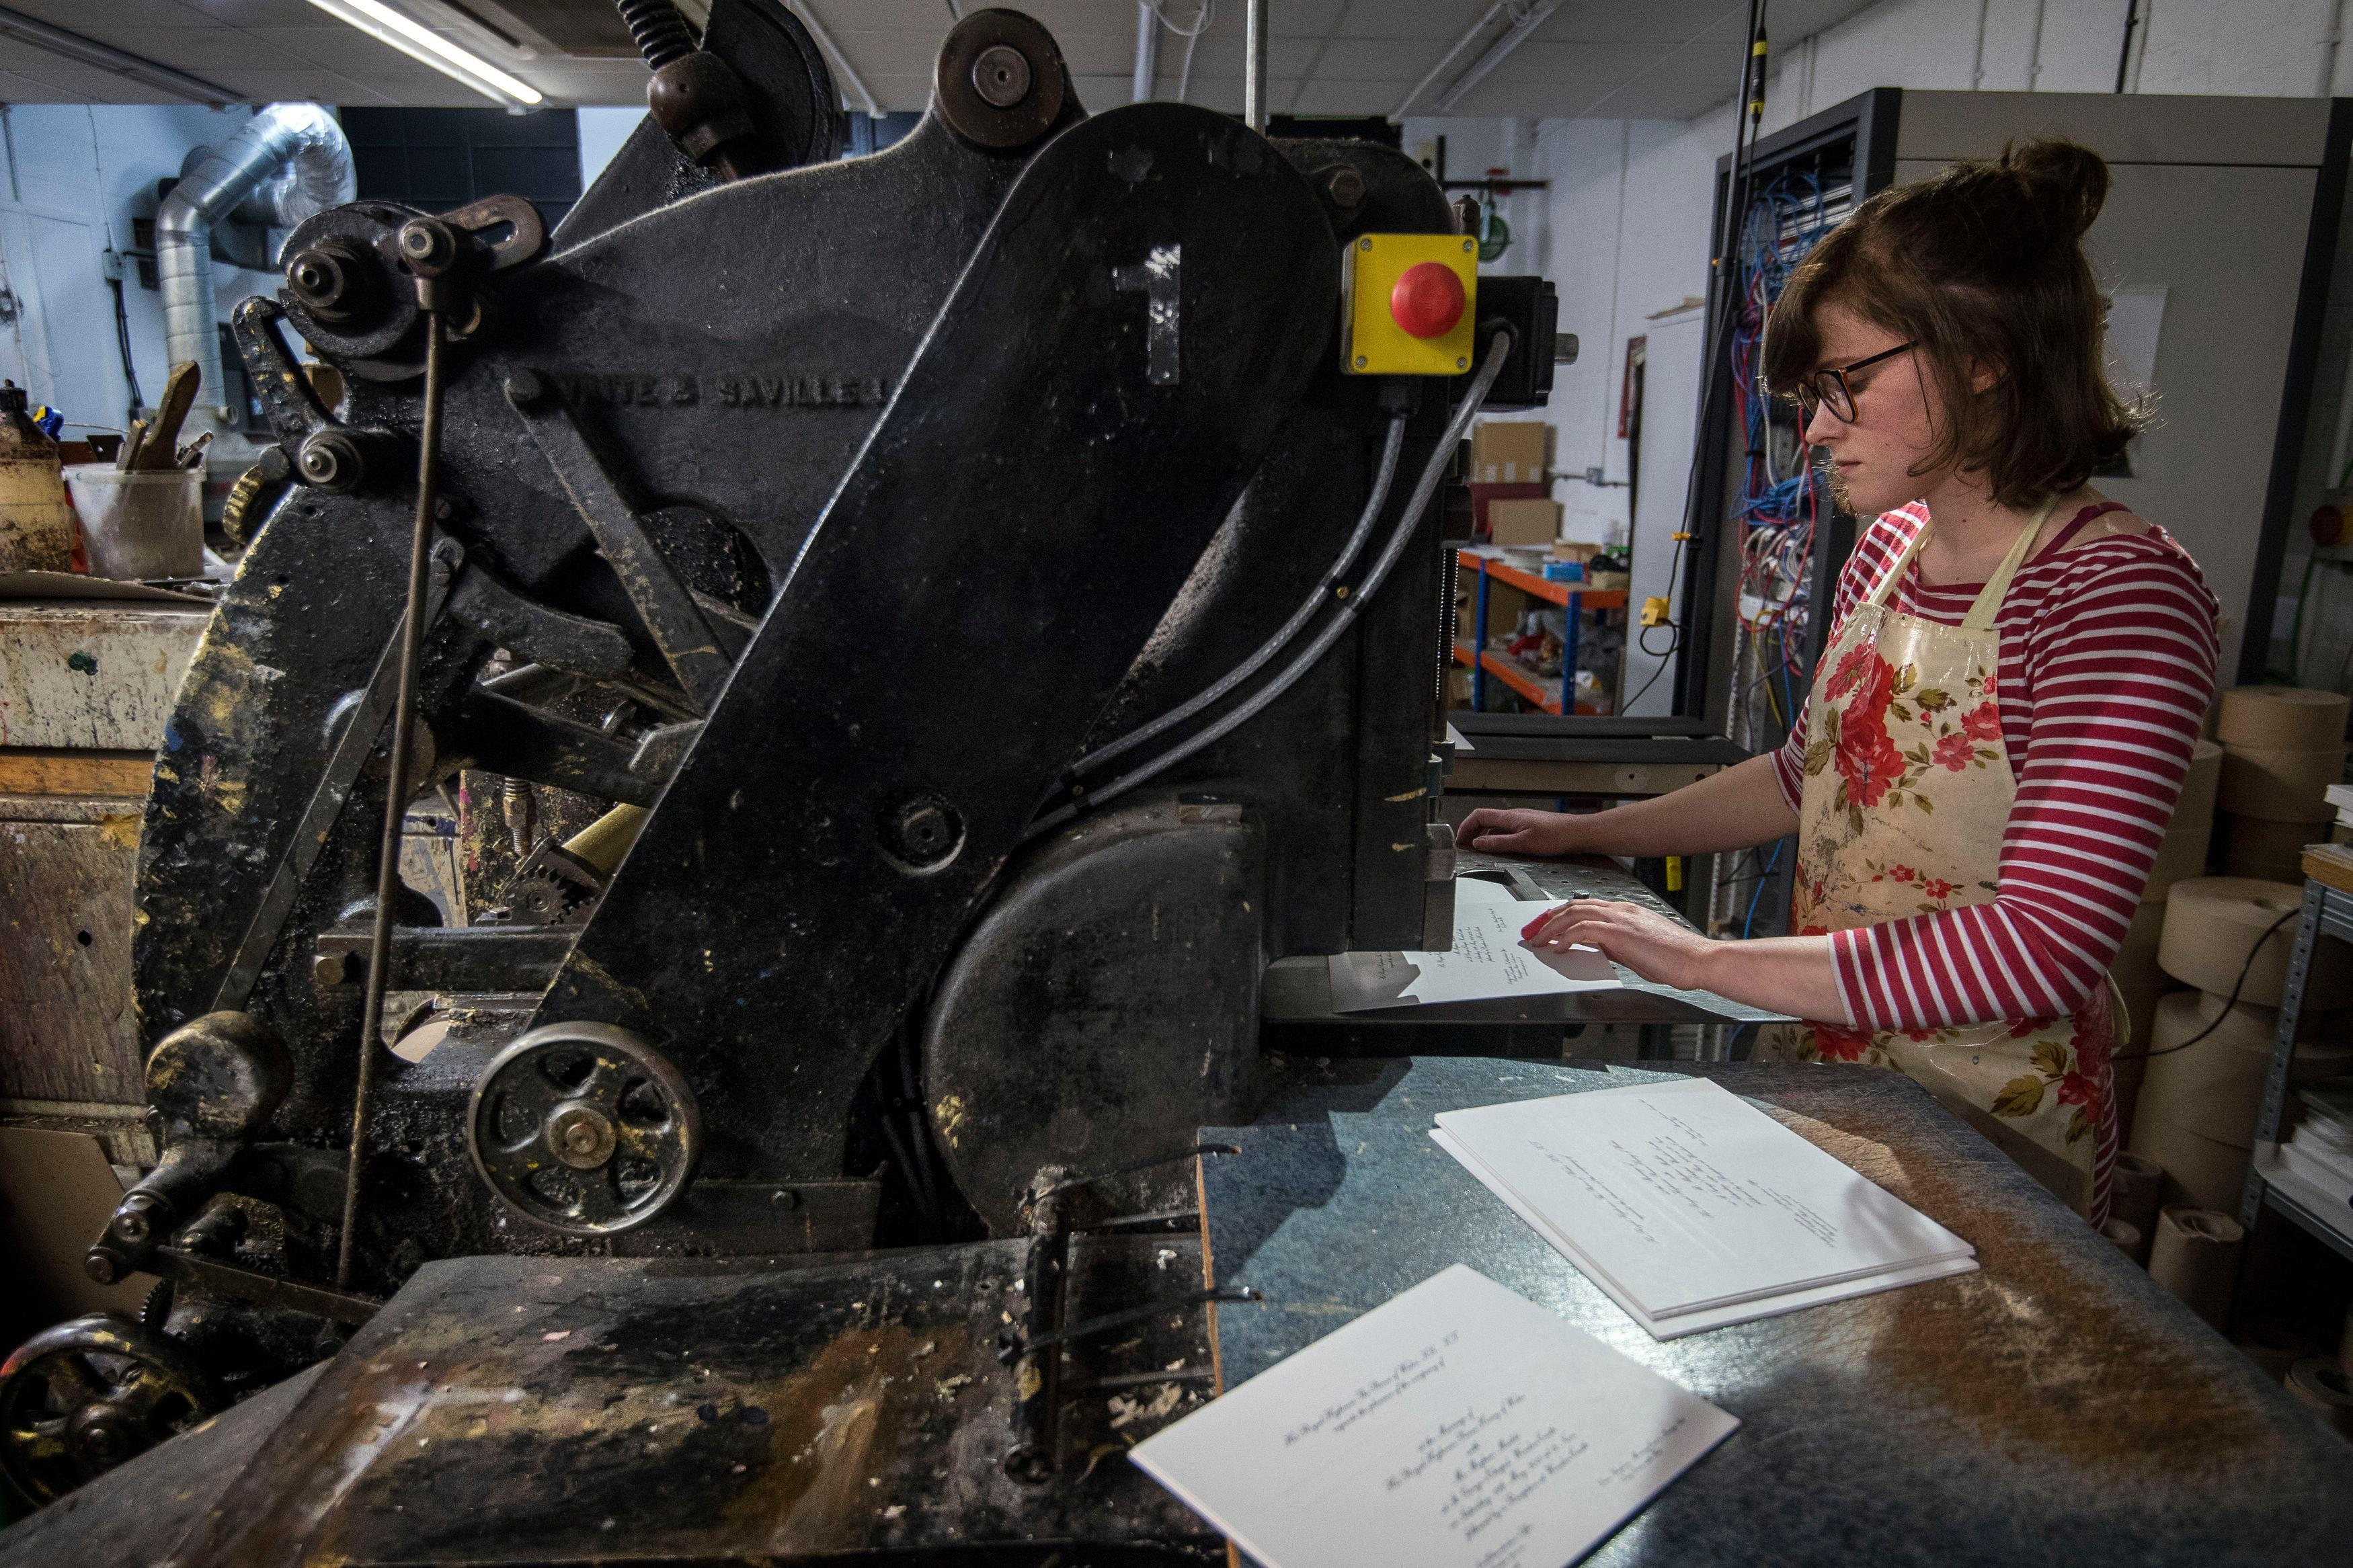 Lottie Small use the die stamping press at the workshop of Barnard and Westwood in London, who are printing the invitations for Prince Harry and Meghan Markle's wedding in May  Thursday March 22, 2018. Prince Harry and Meghan will get married at St George's Chapel  in Windsor Castle on Saturday  May 19. (Victoria Jones/Pool via AP)